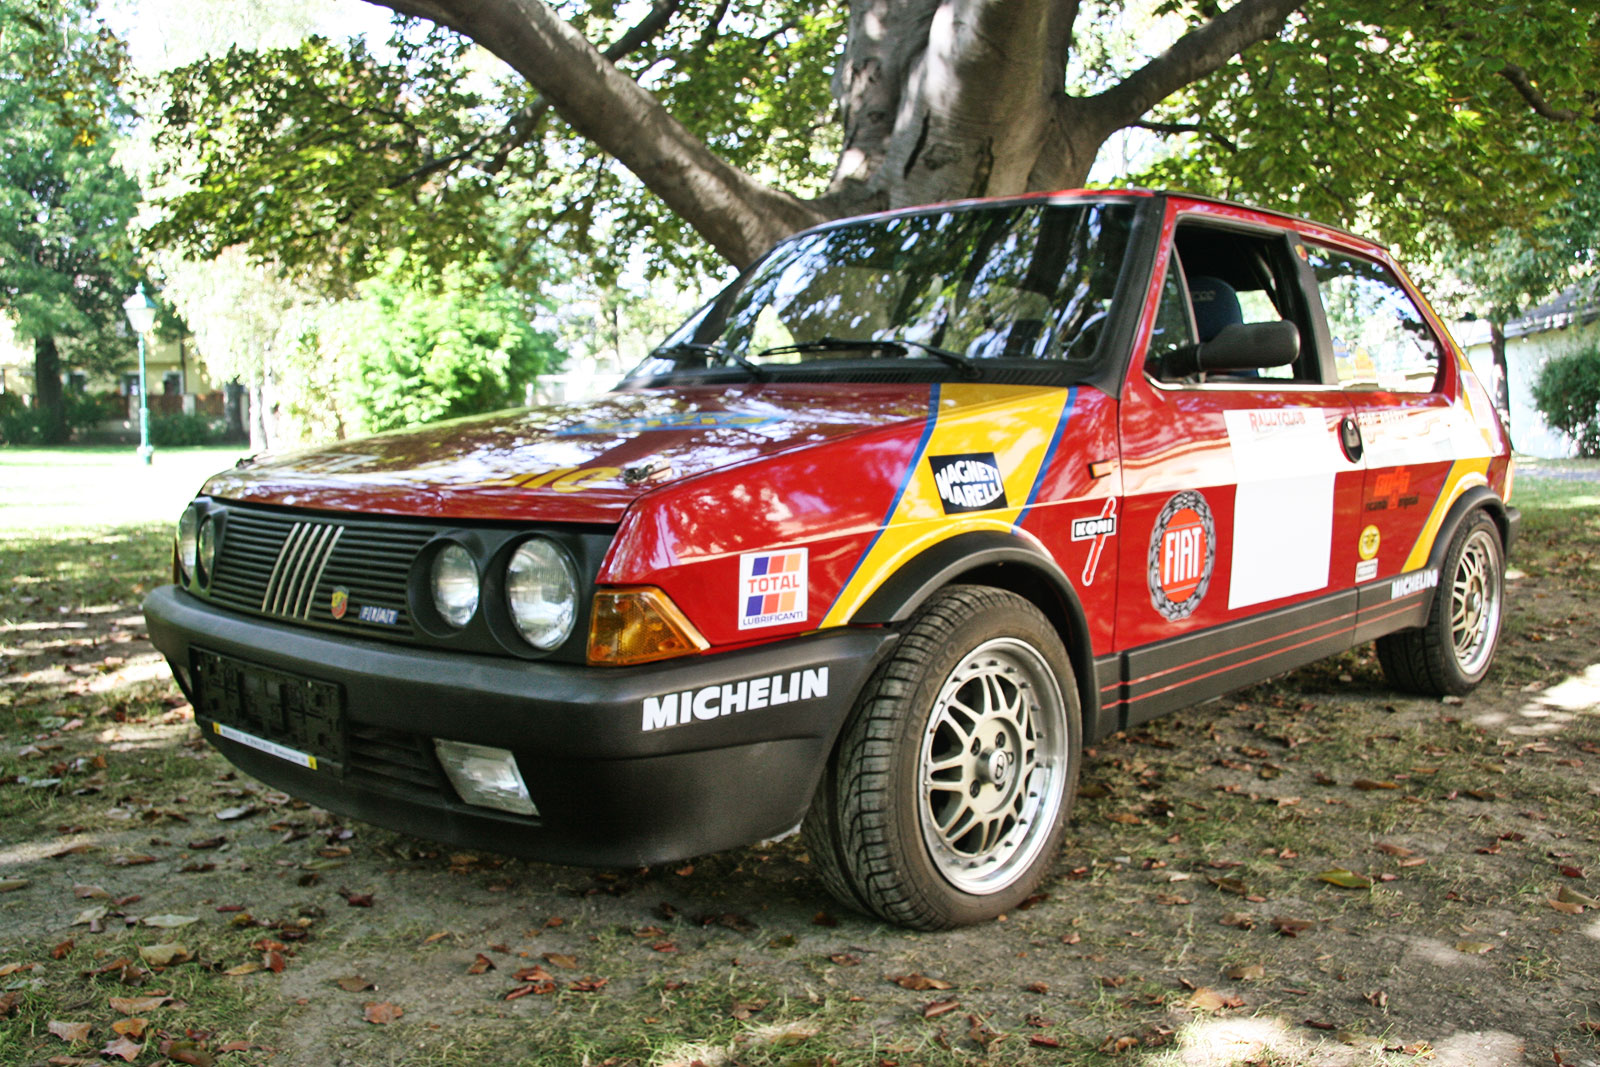 fiat ritmo 130 tc abarth the schwab collection vintage rally cars. Black Bedroom Furniture Sets. Home Design Ideas